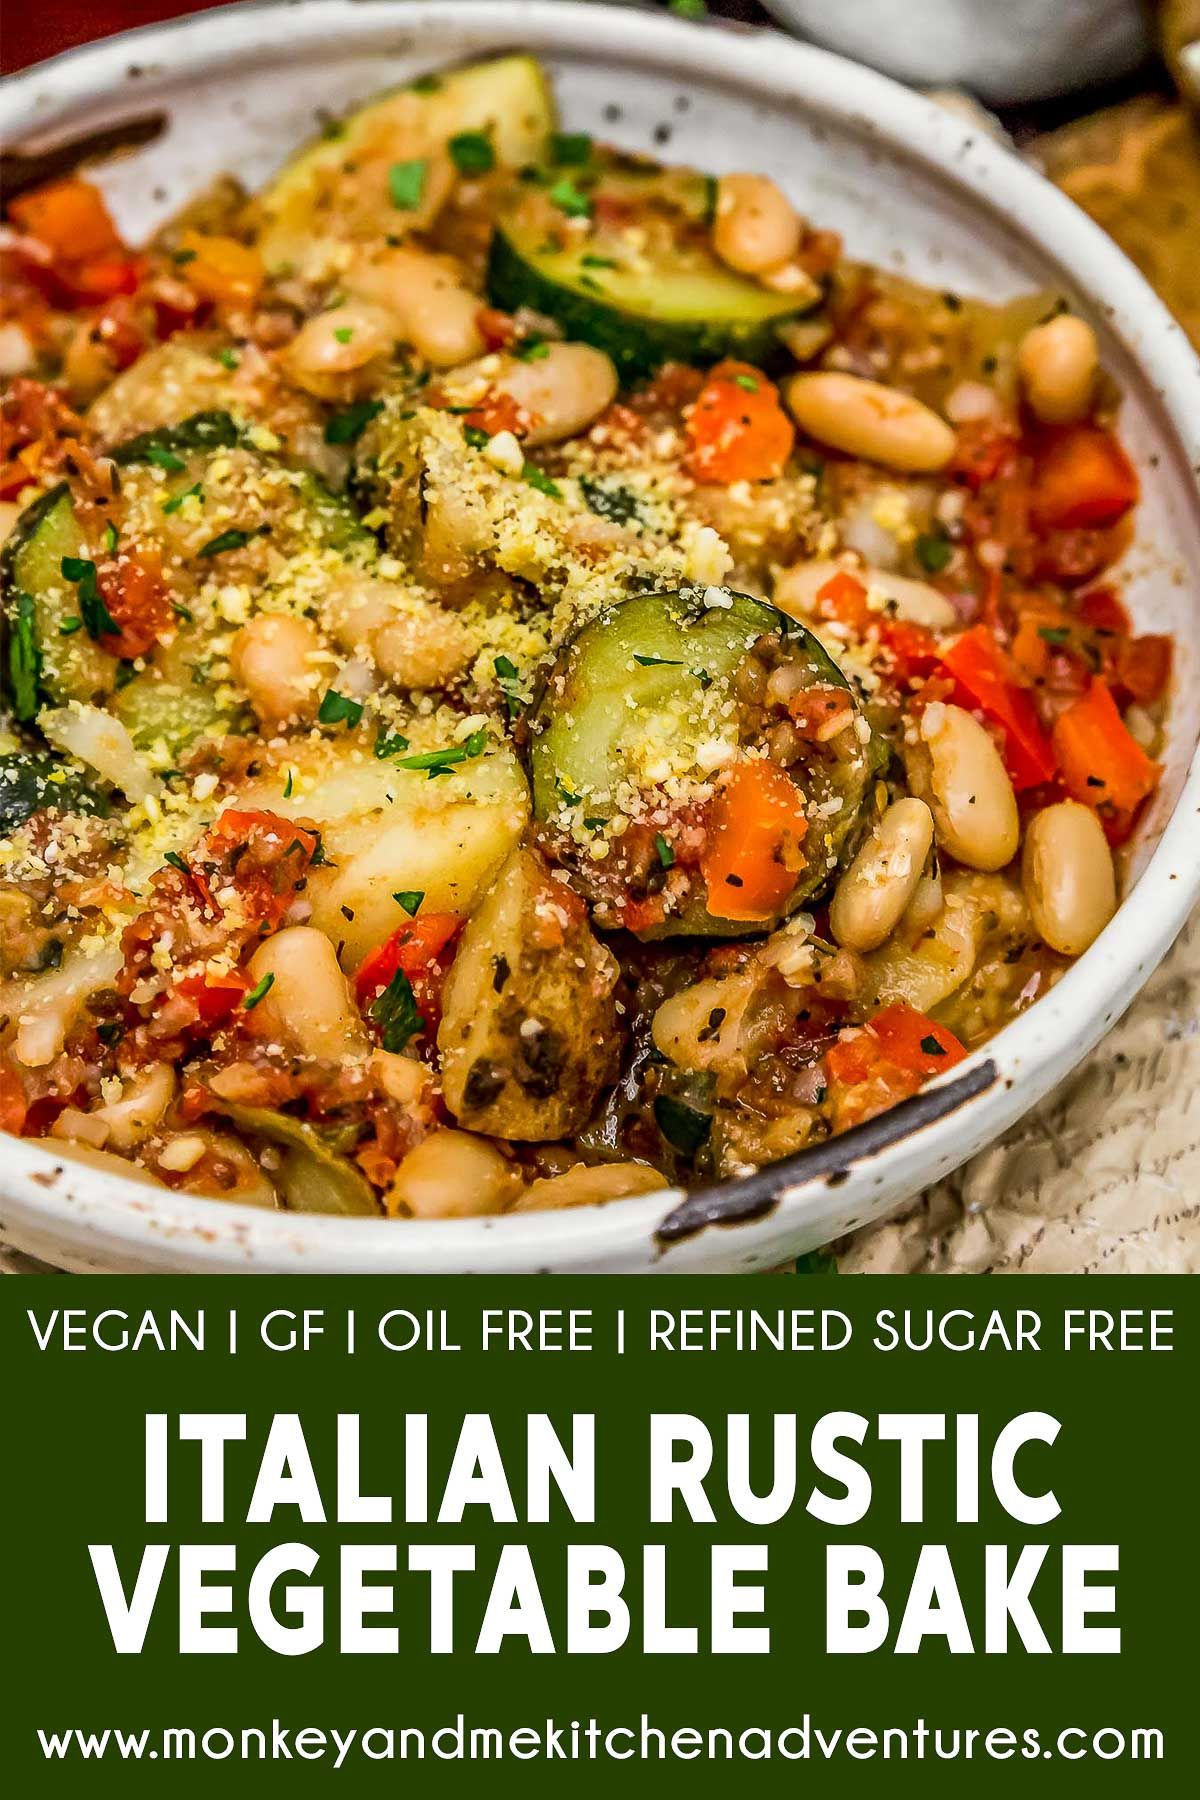 Rustic Italian Vegetable Bake - Monkey and Me Kitchen Adventures